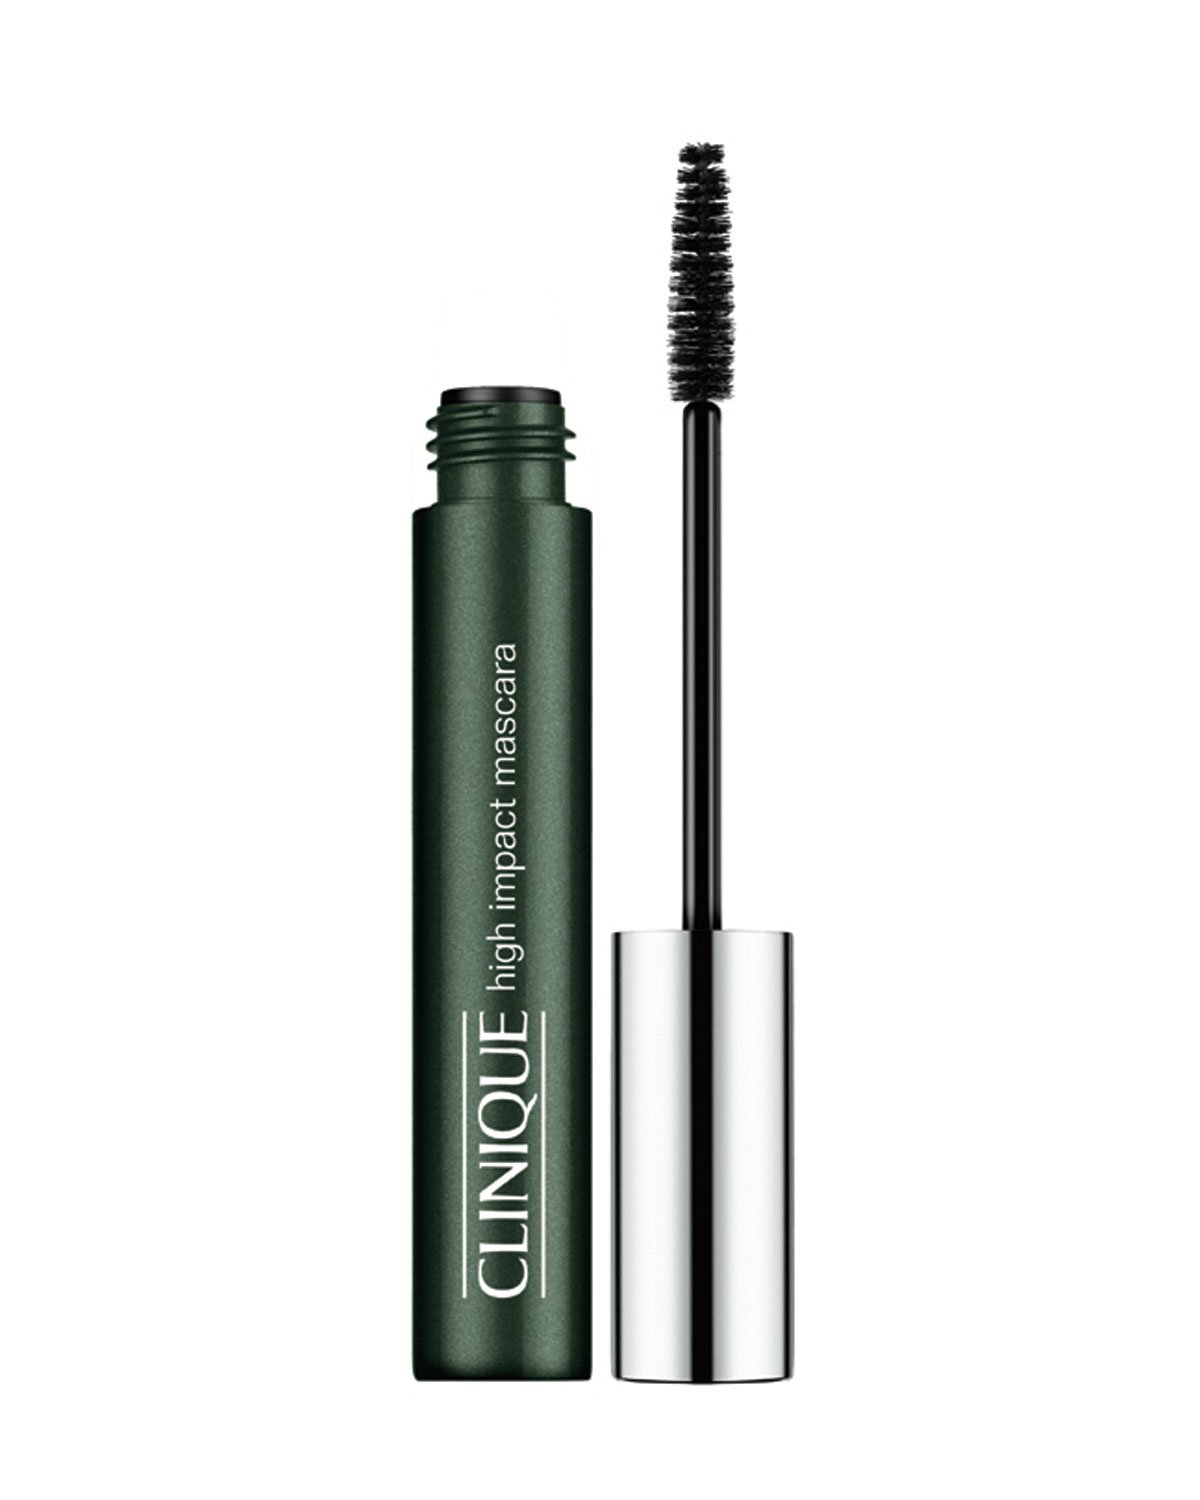 Clinique - High Impact Mascara 01 Black